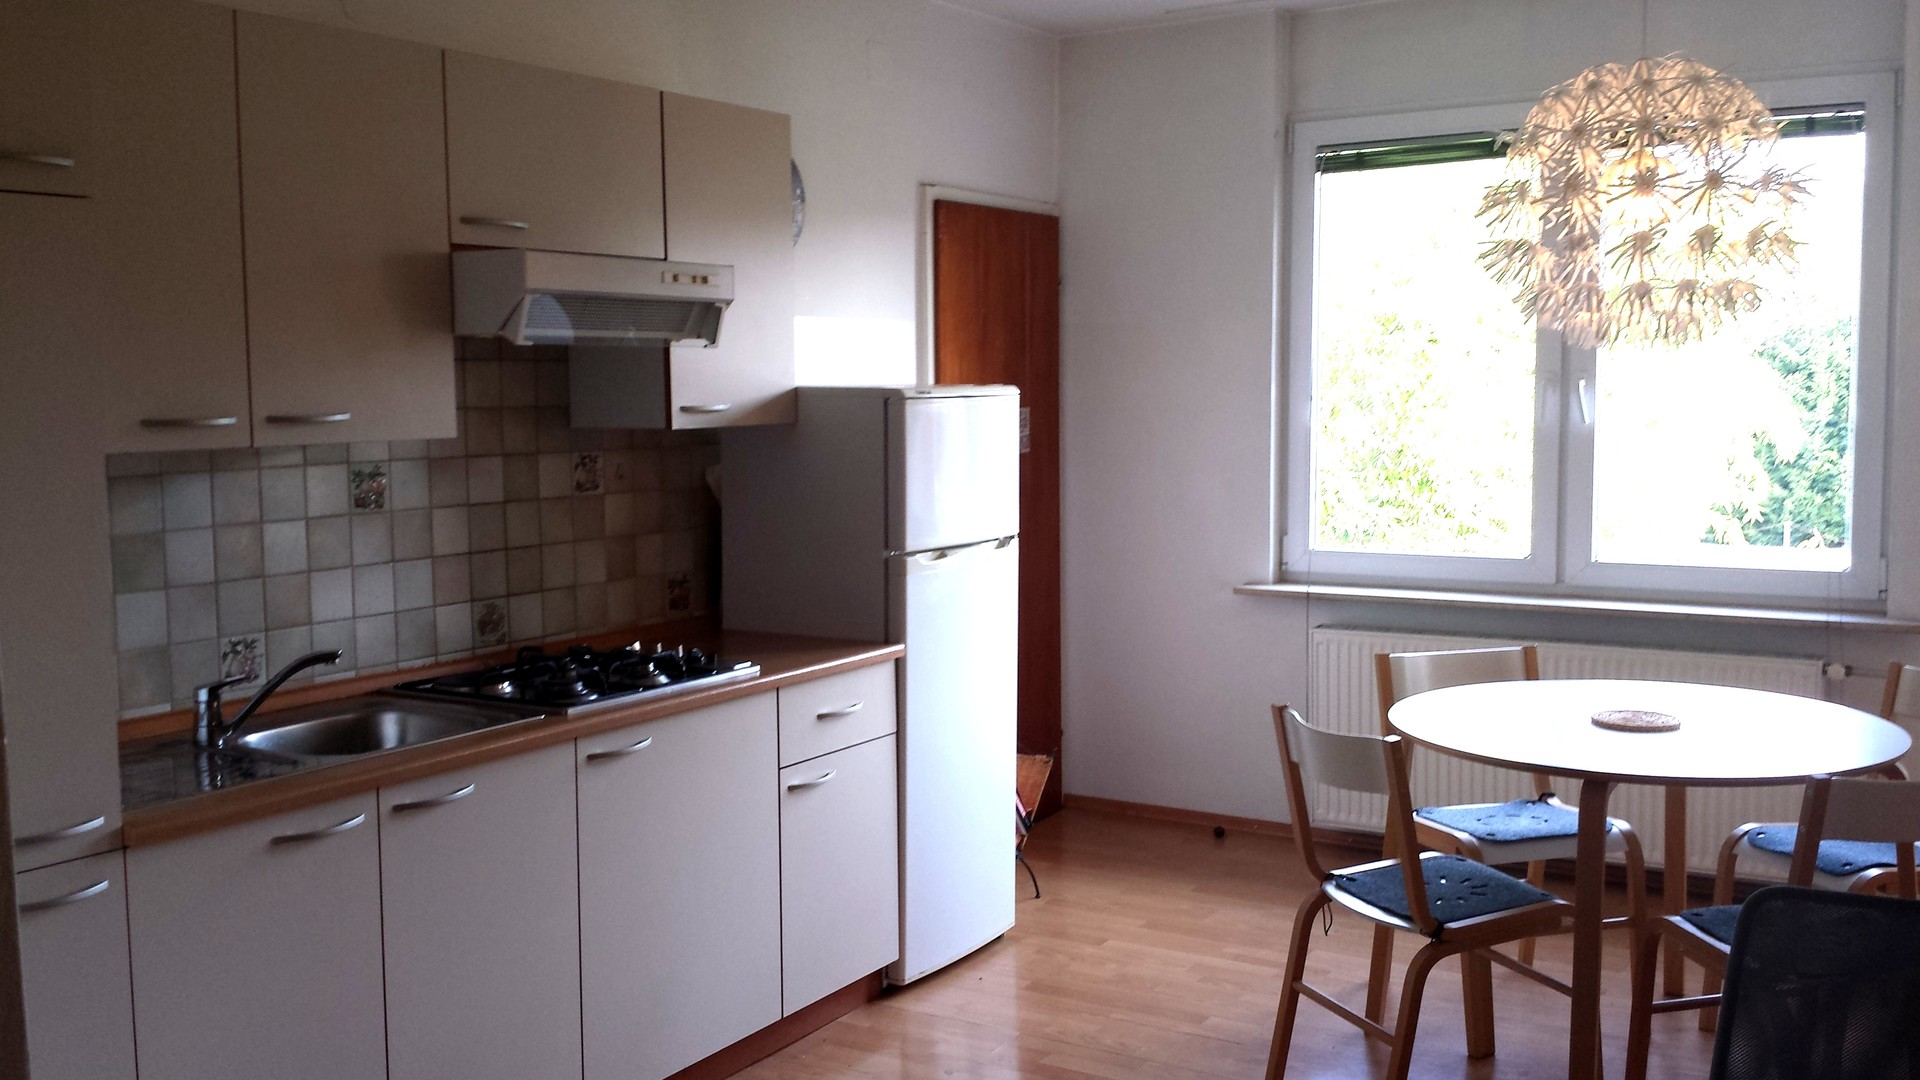 Home away from home: Great single room with fantastic view